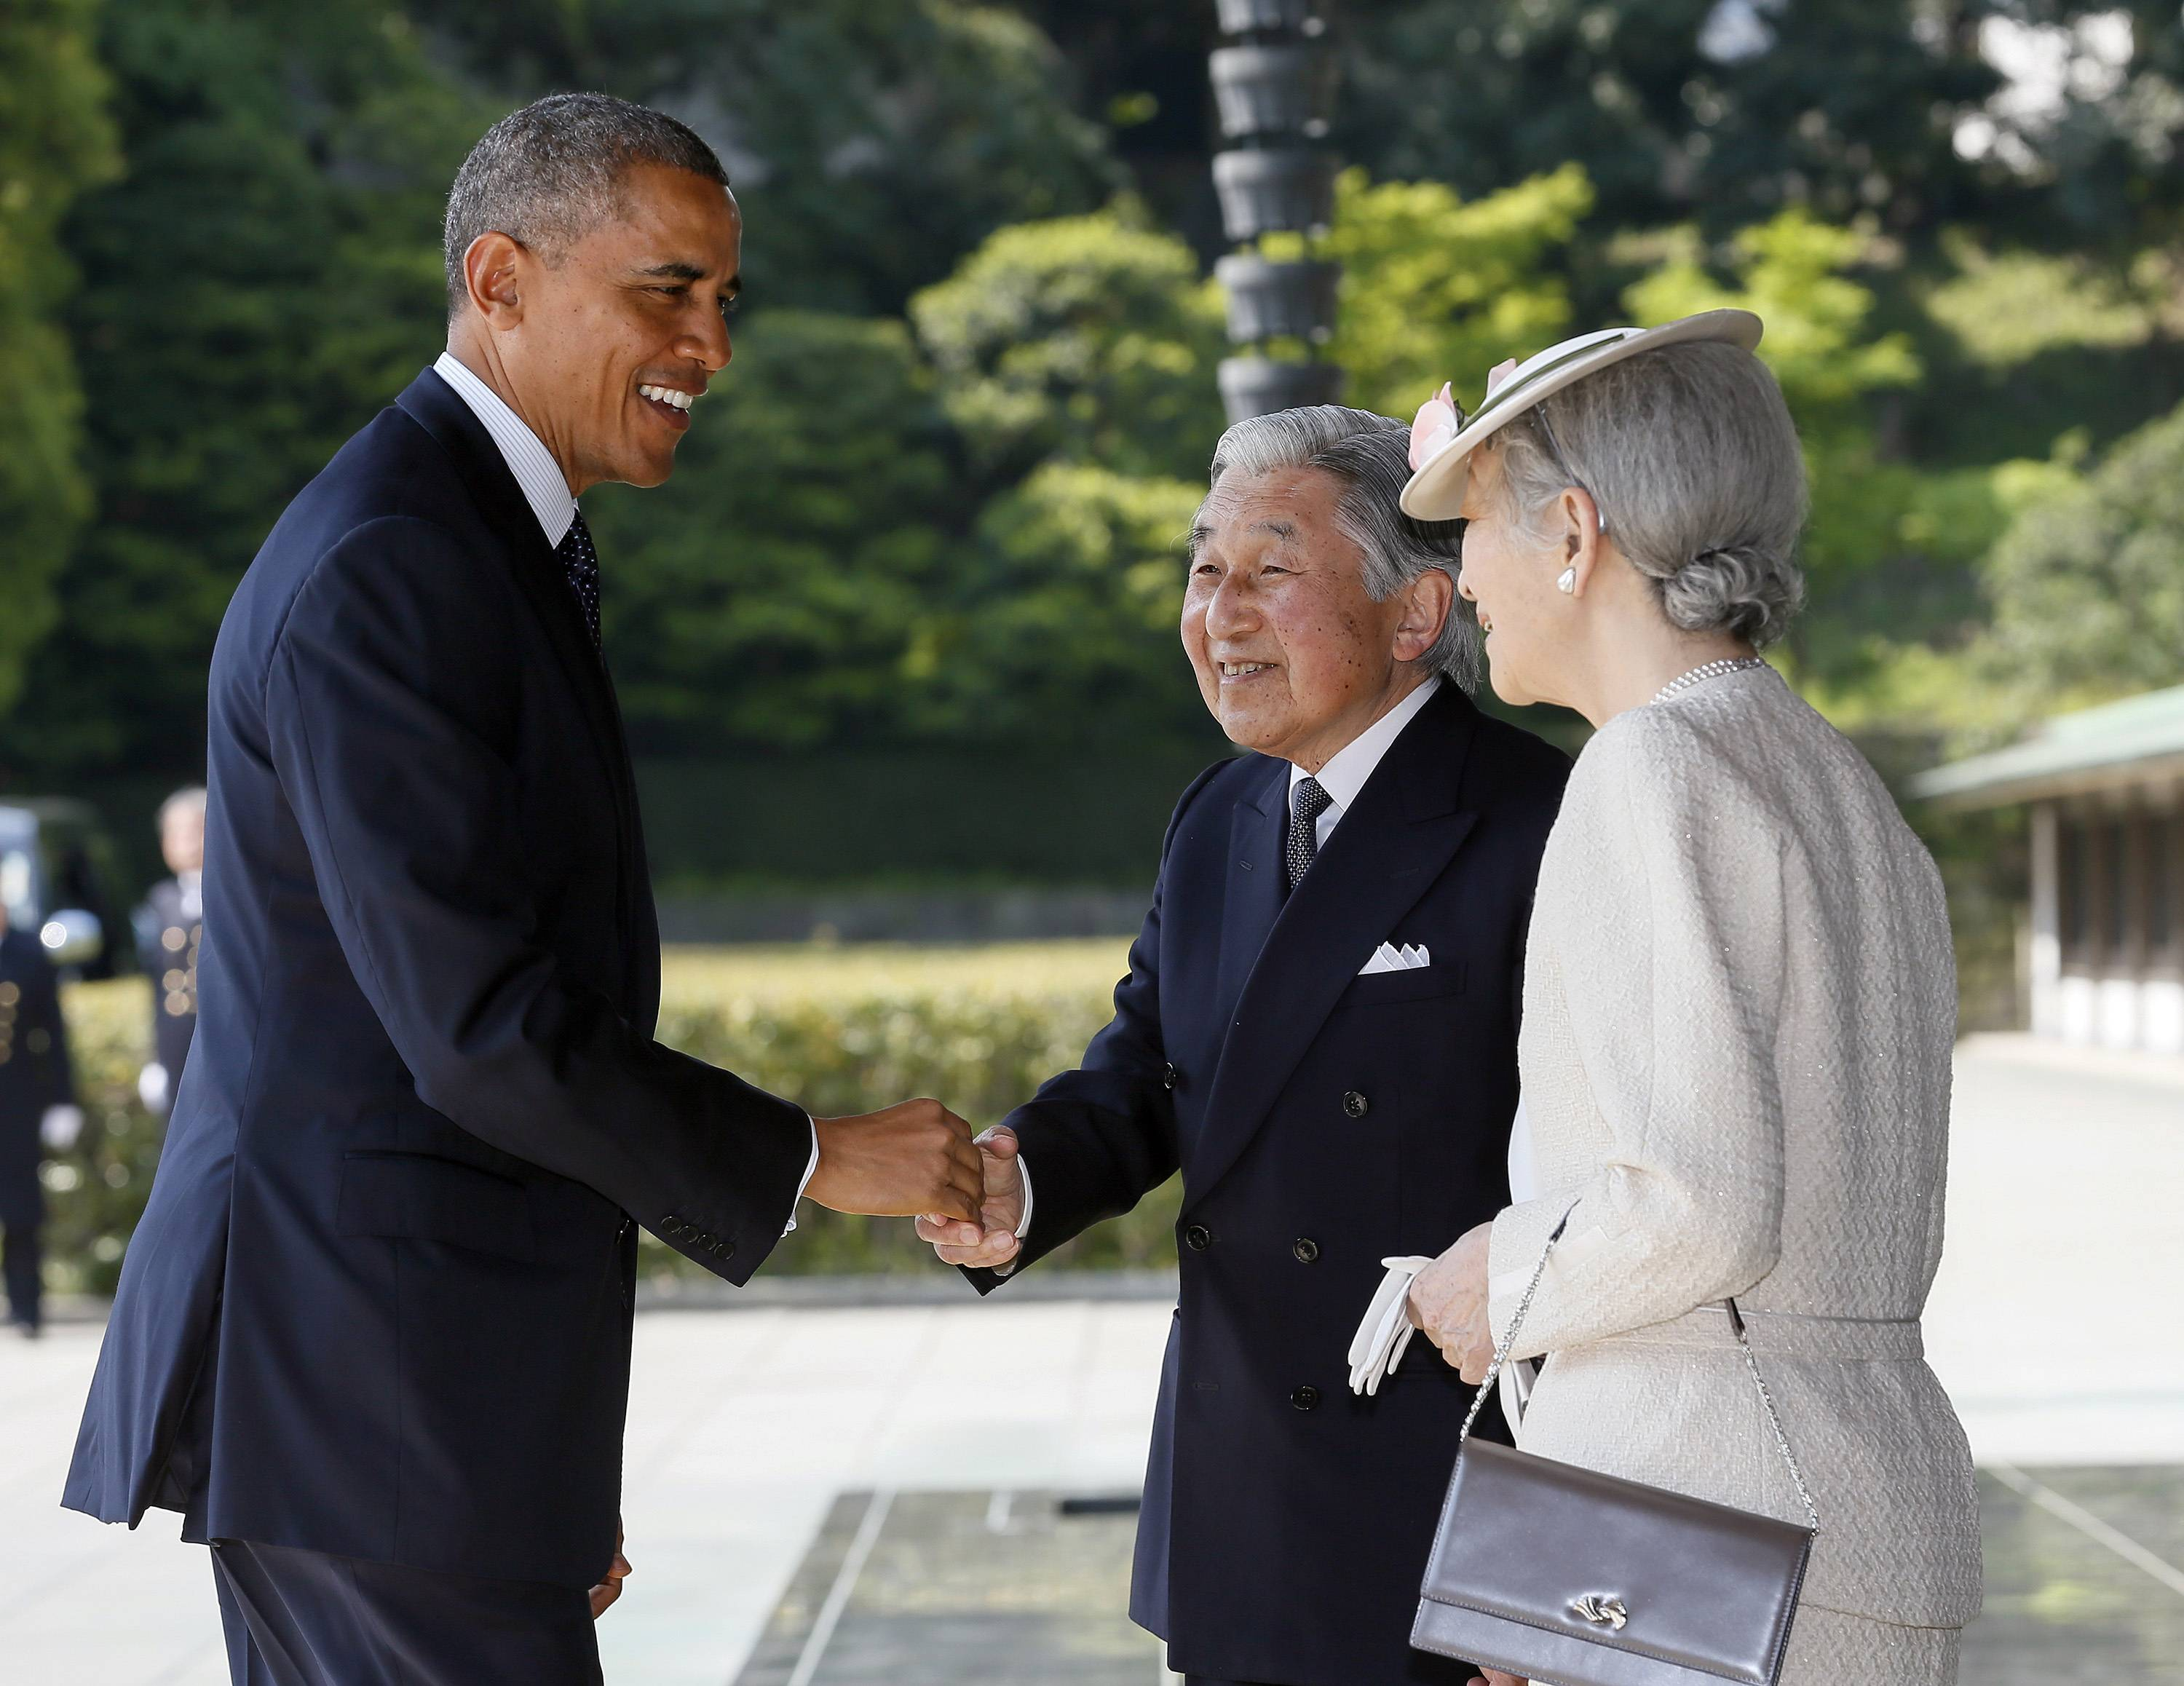 ASSOCIATED PRESSPresident Barack Obama is welcomed by Japan's Emperor Akihito and Empress Michiko upon his arrival at the Imperial Palace for the welcoming ceremony in Tokyo earlier today.